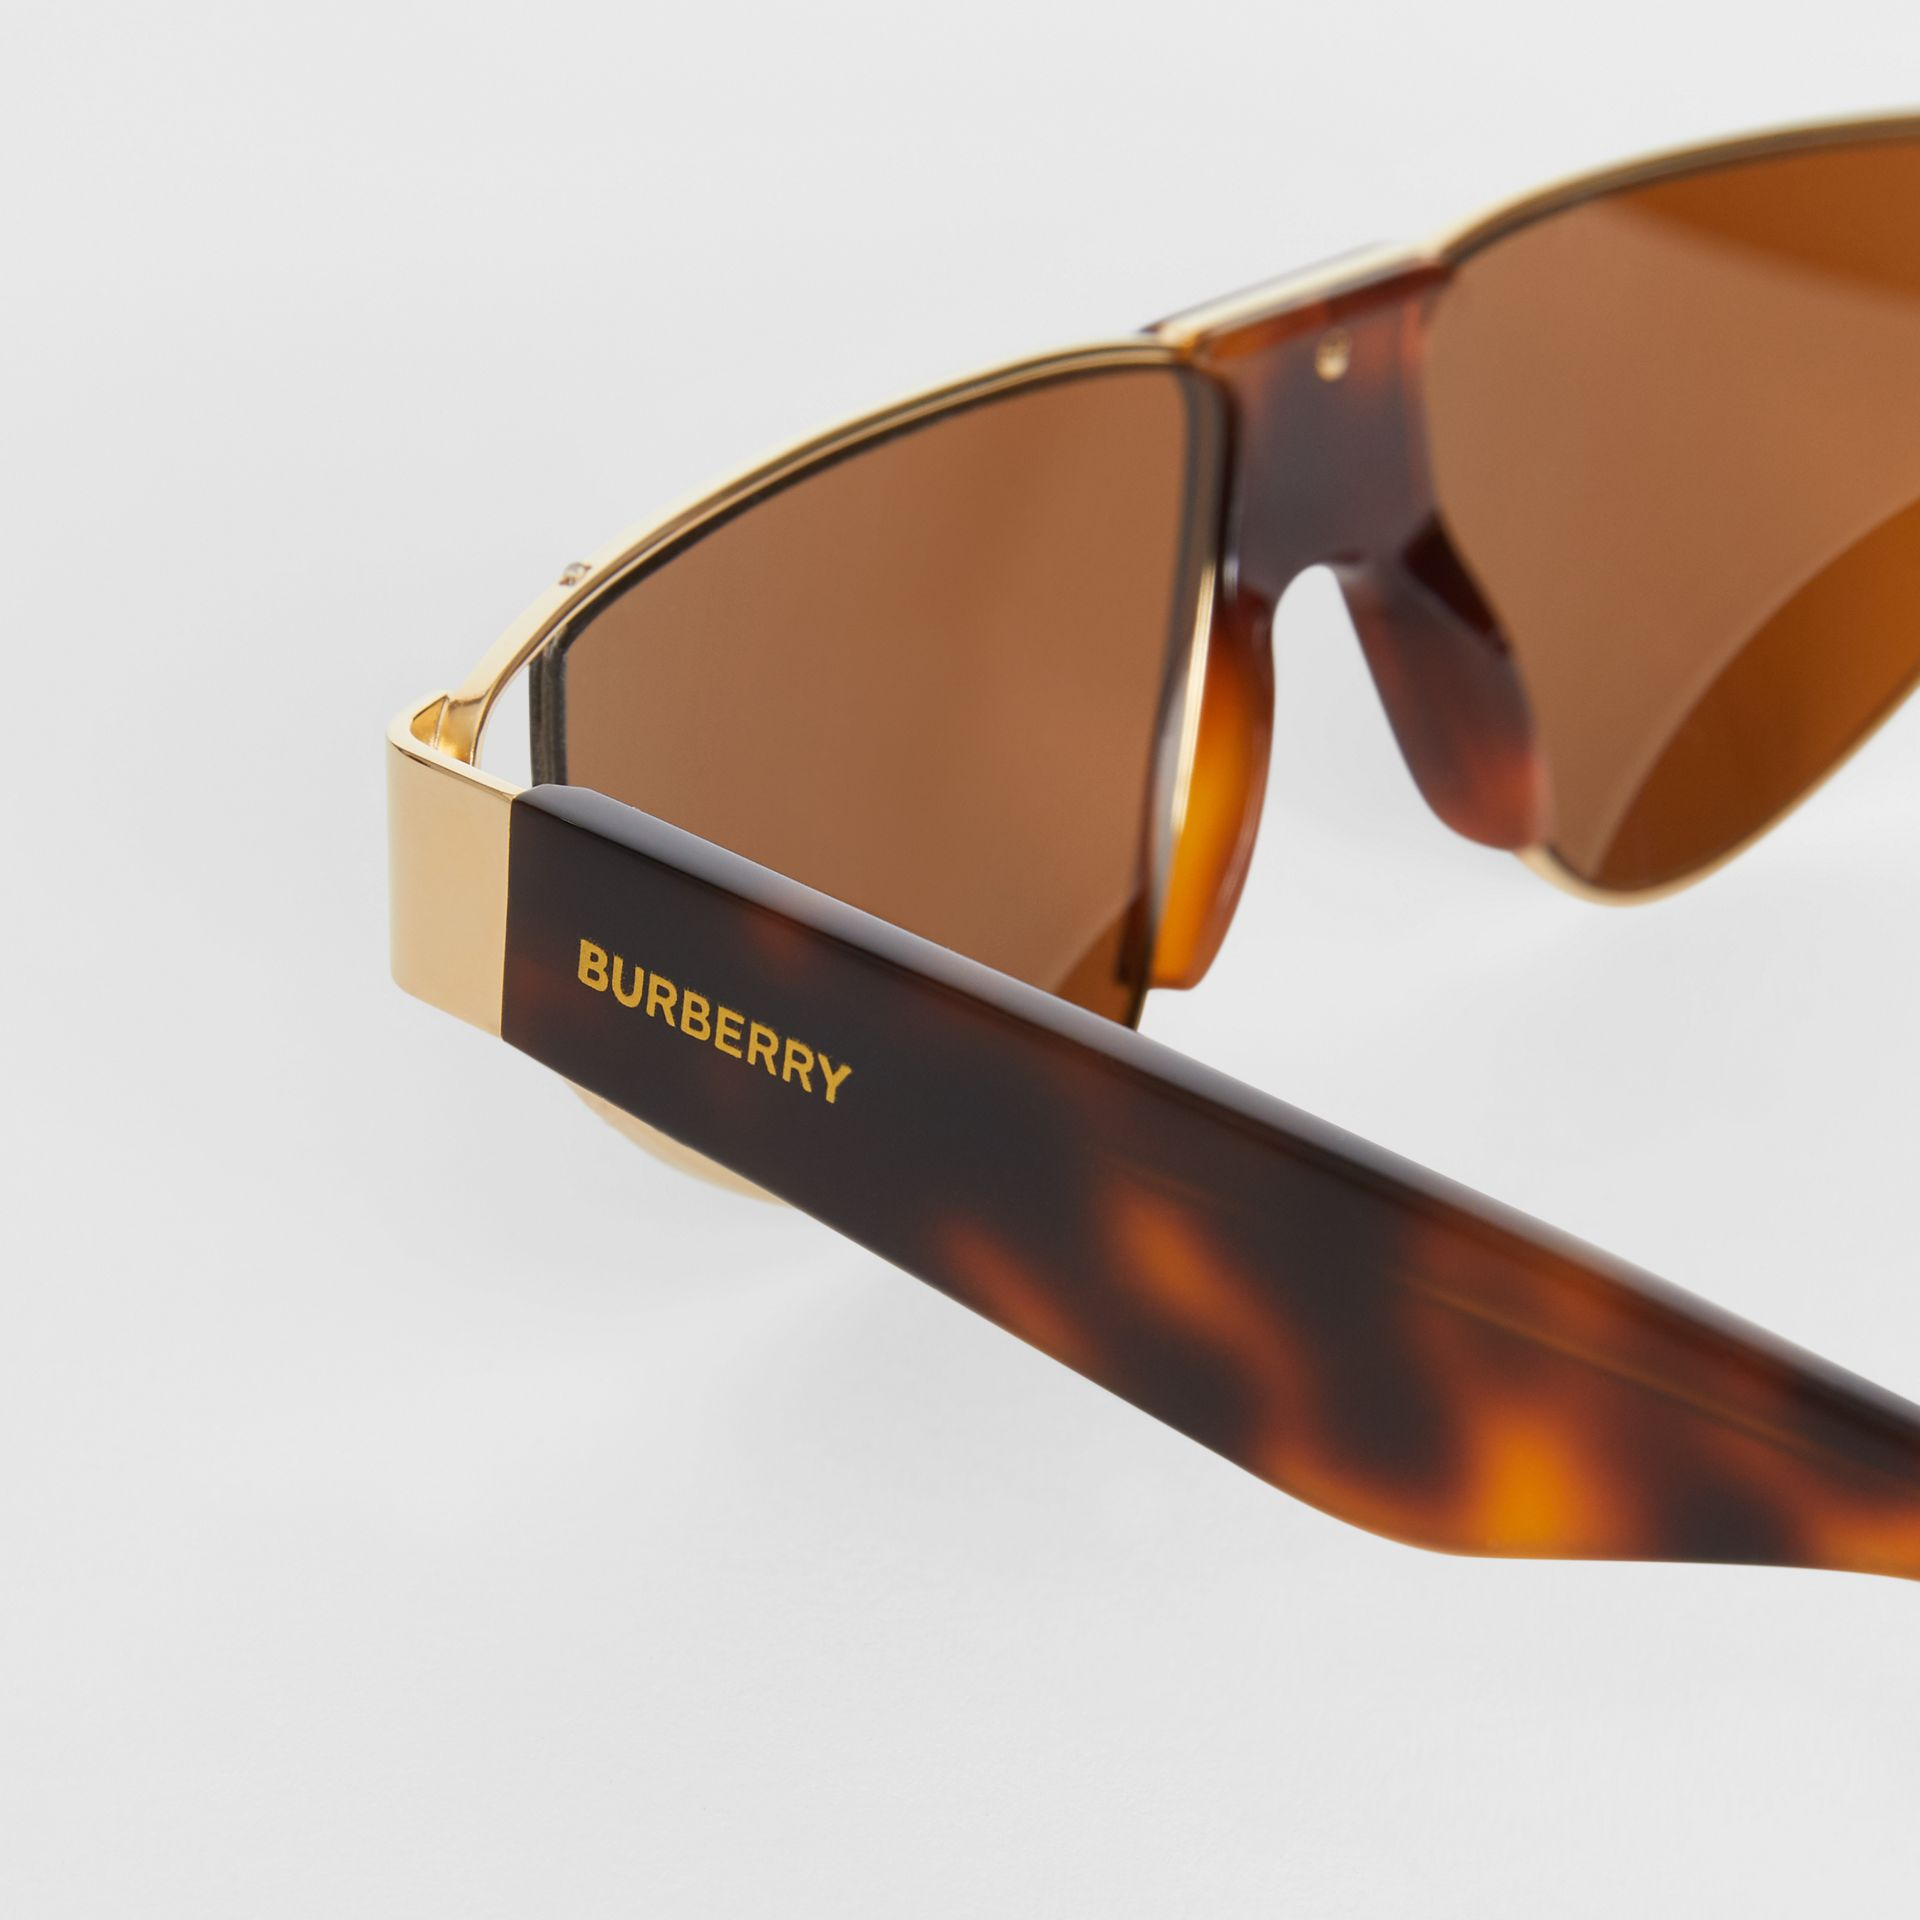 Gold-plated Triangular Frame Sunglasses in Tortoiseshell | Burberry - gallery image 8